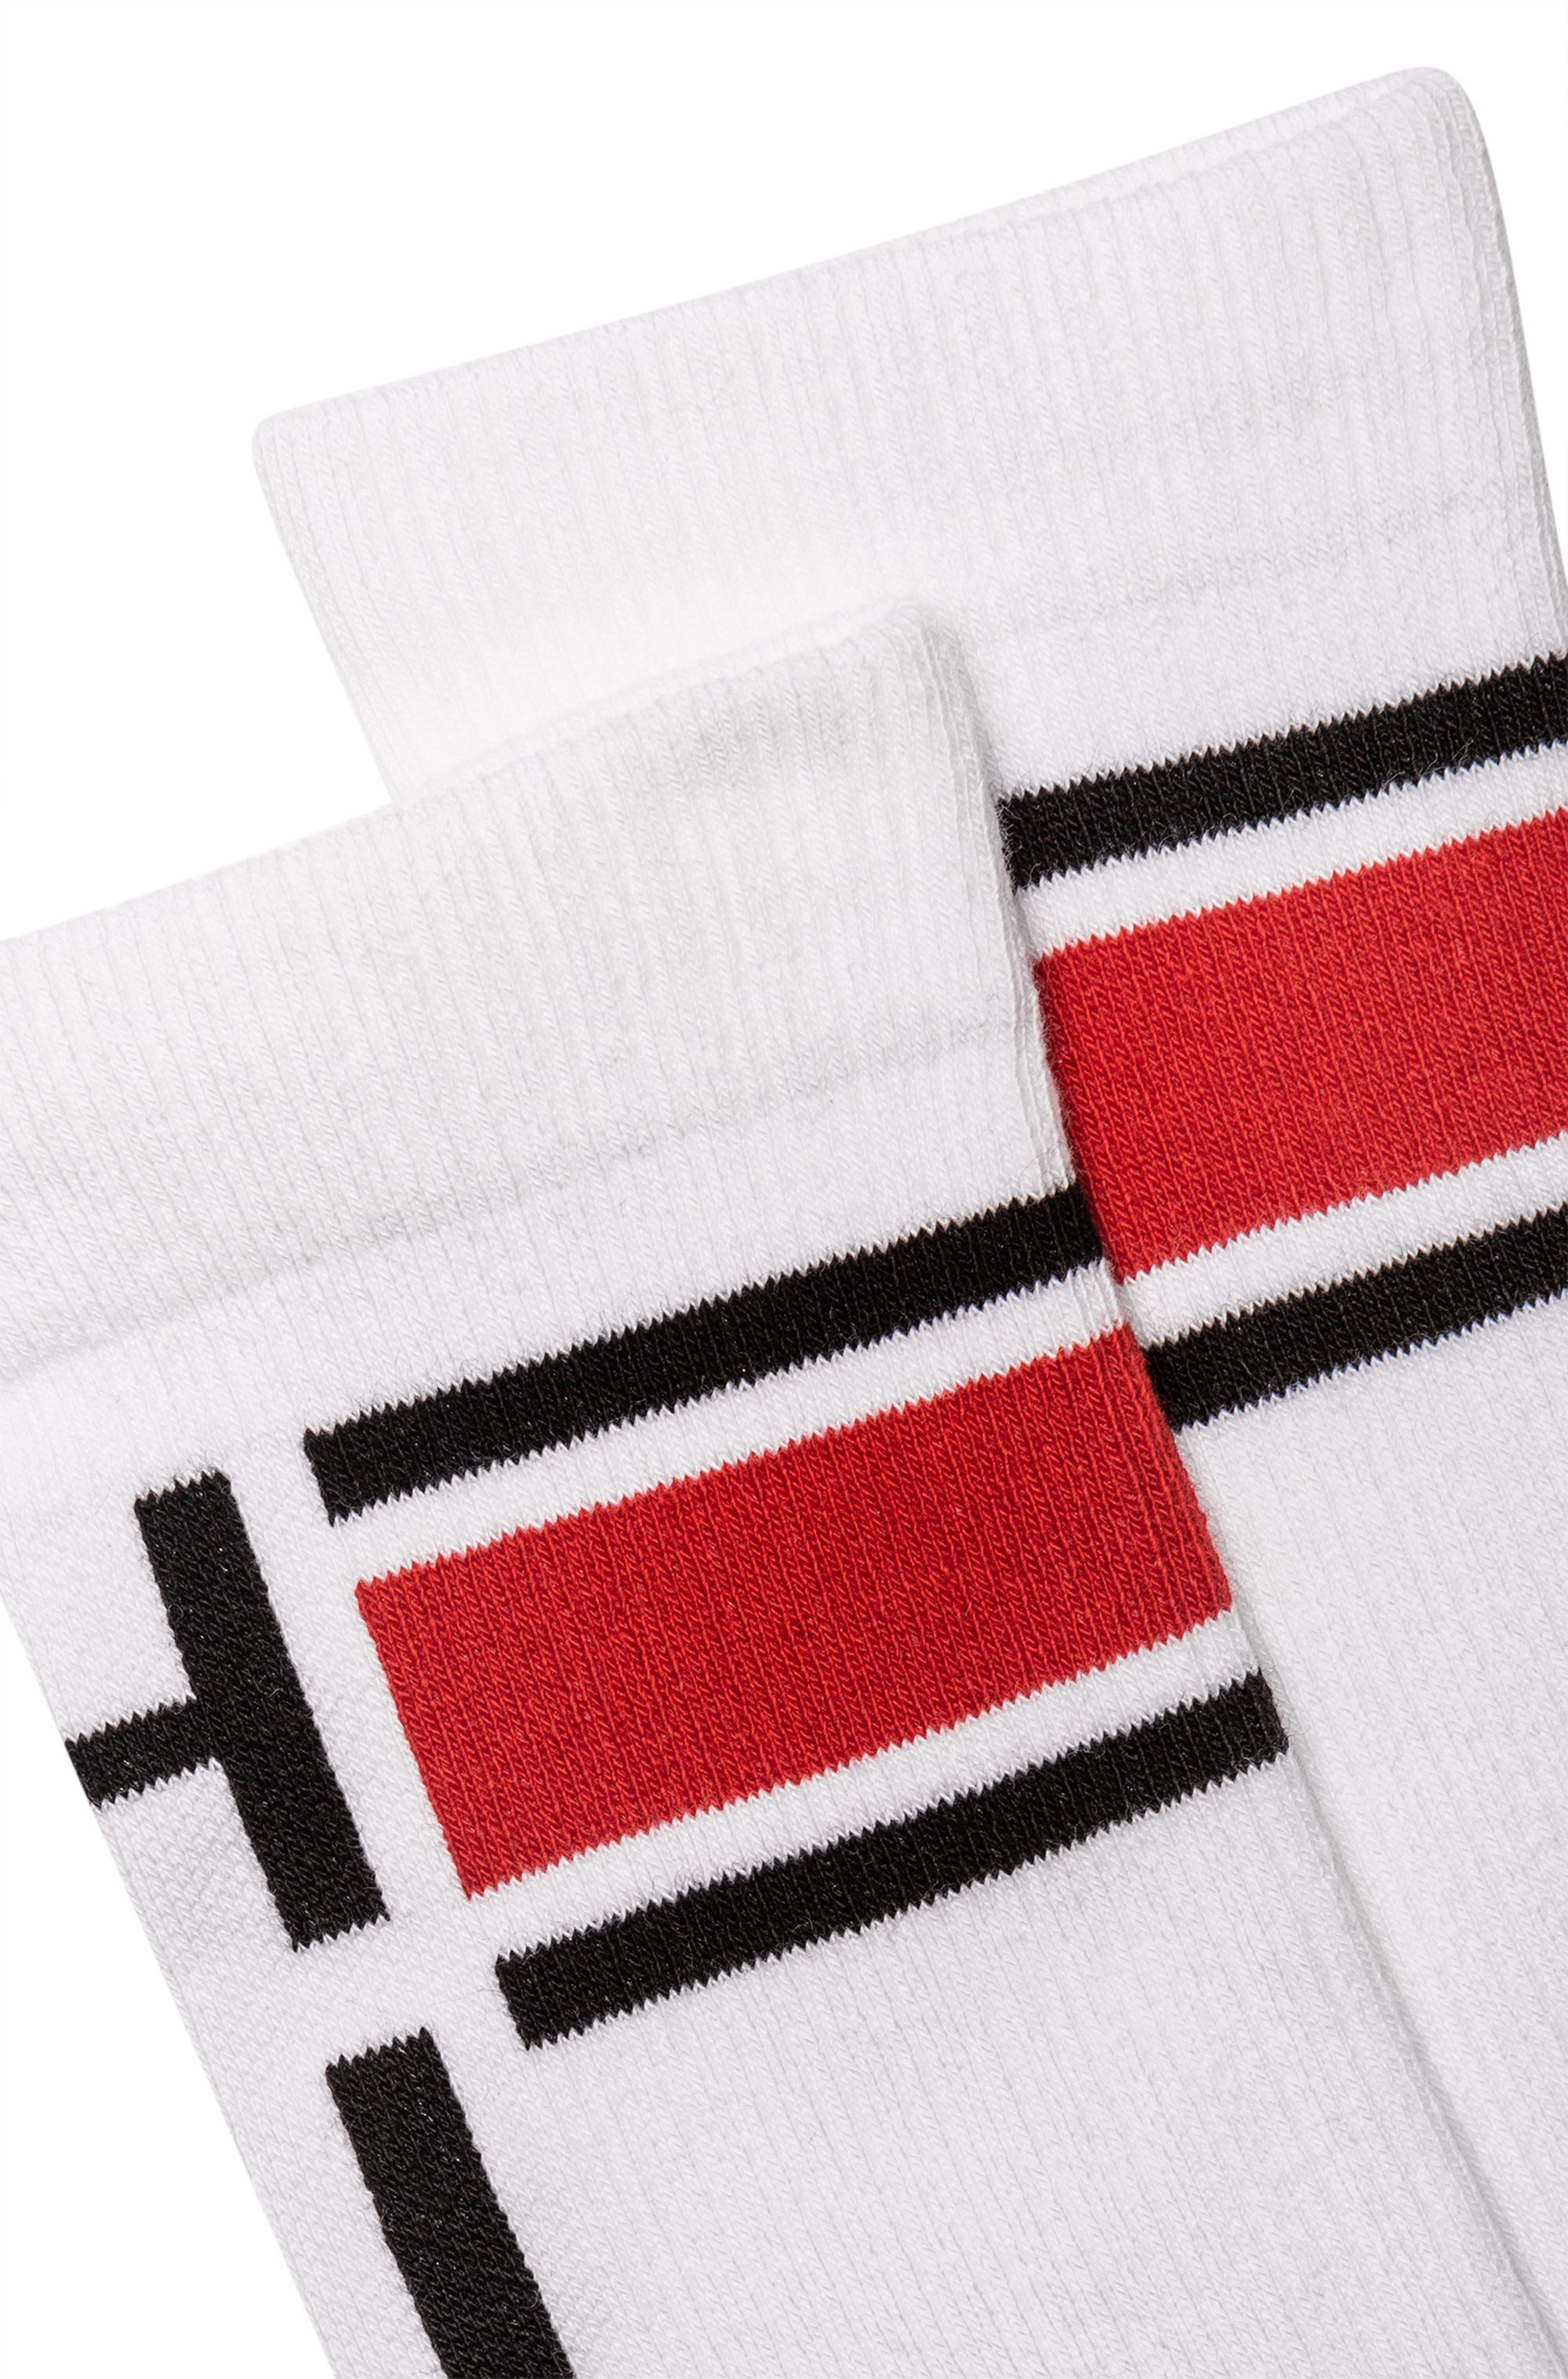 Skater-style socks with stripes and logo